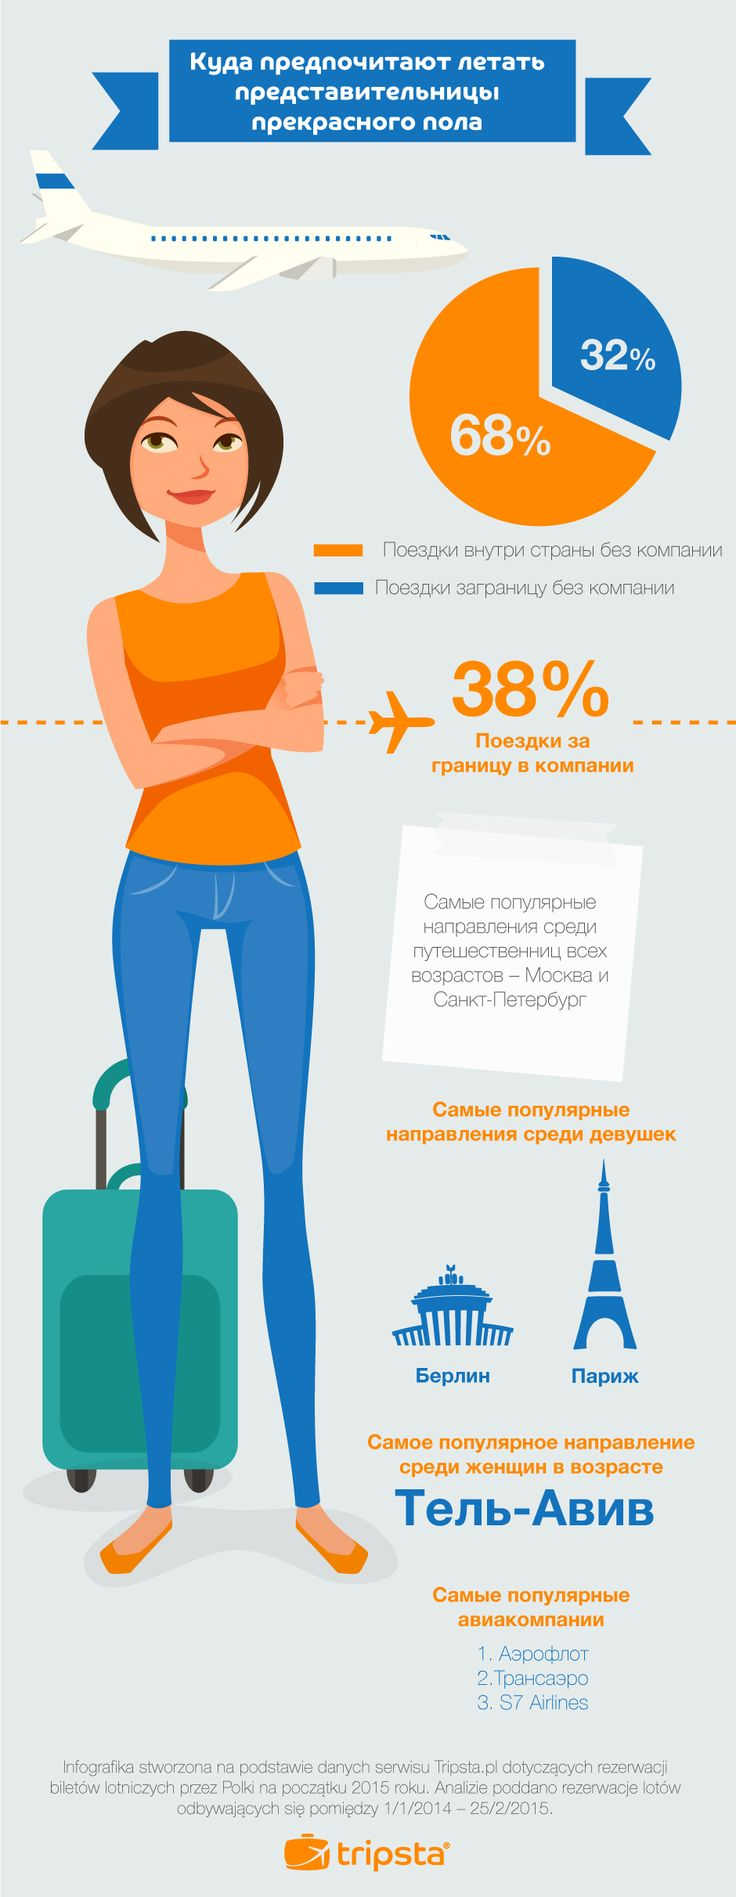 Solo Holidays - How Women Travel in Russia #tripsta #infographic